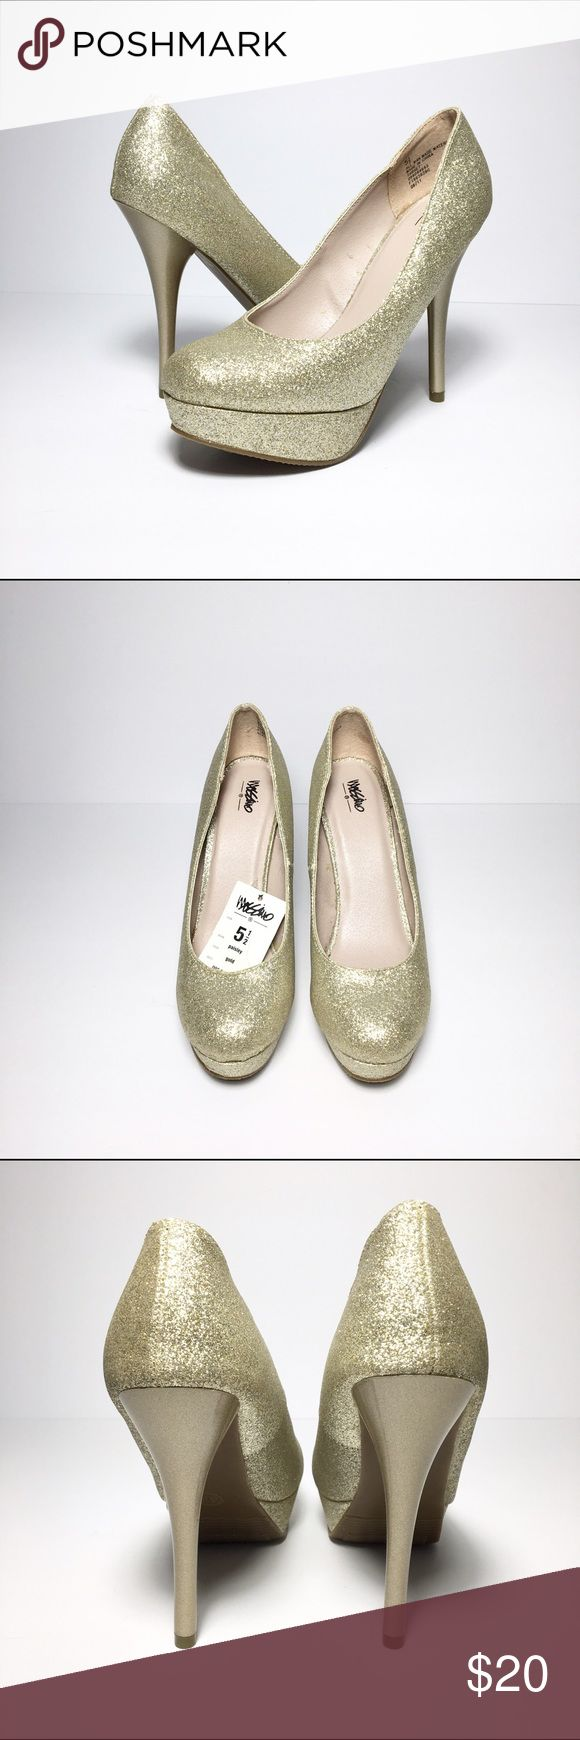 """*NWT* Mossimo Paisley Gold Glitter Platform Pump Pretty gold glitter pumps from Target with tag still attached! These have never been worn, just tried on. There is some glue from the shoe on the inside of the shoes but you can't see it when you're wearing them. Love these shoes, they're perfect with a little black dress for a night out!! 1"""" platform, 4.75"""" heel Mossimo Shoes"""